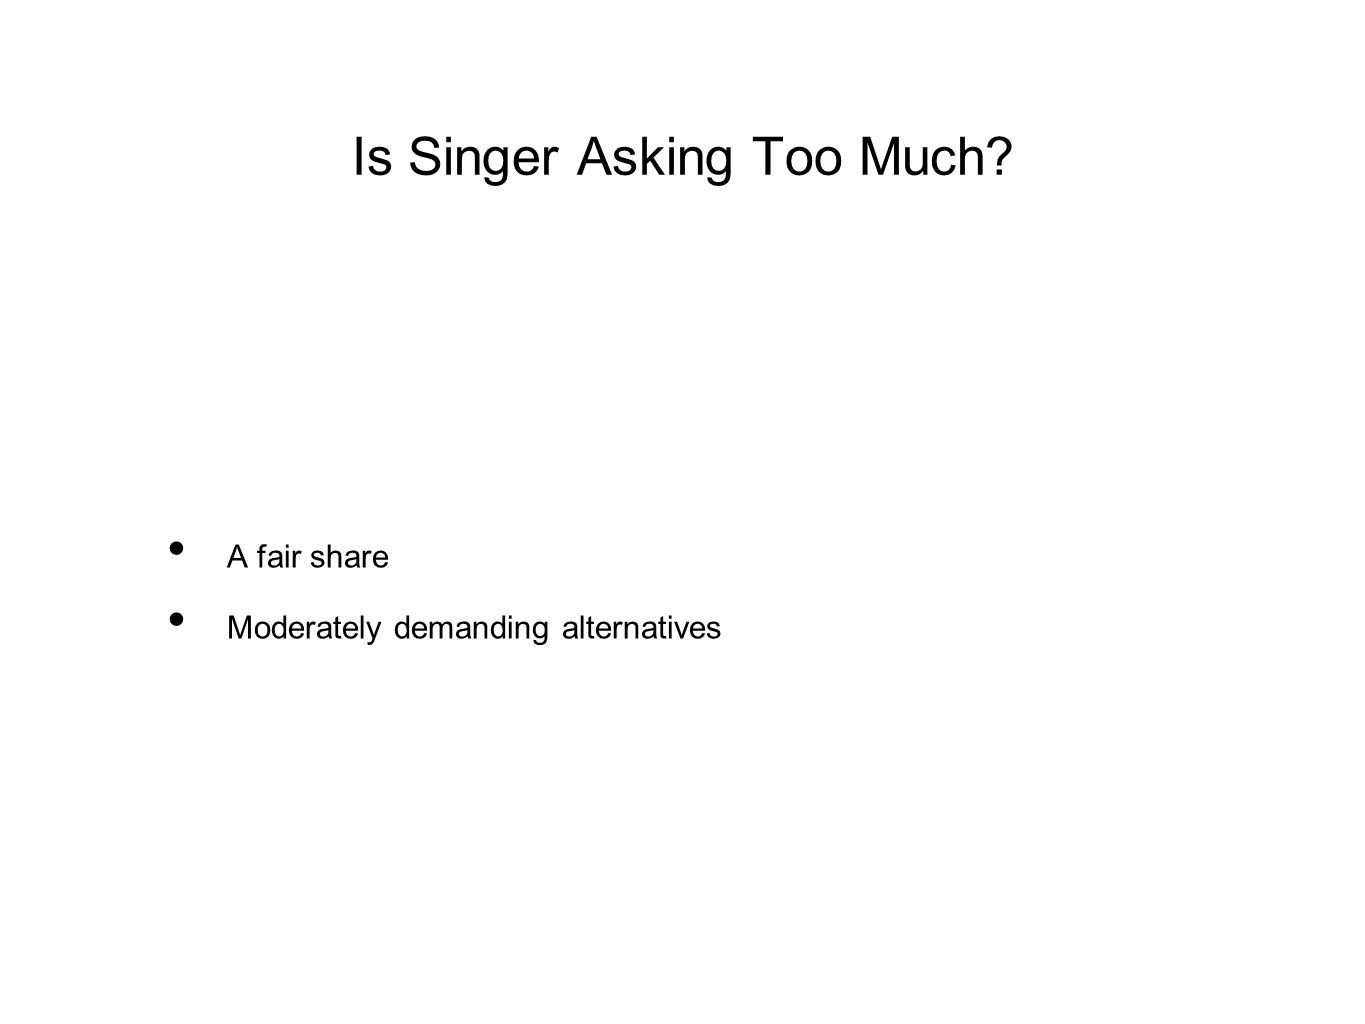 Is Singer Asking Too Much A fair share Moderately demanding alternatives